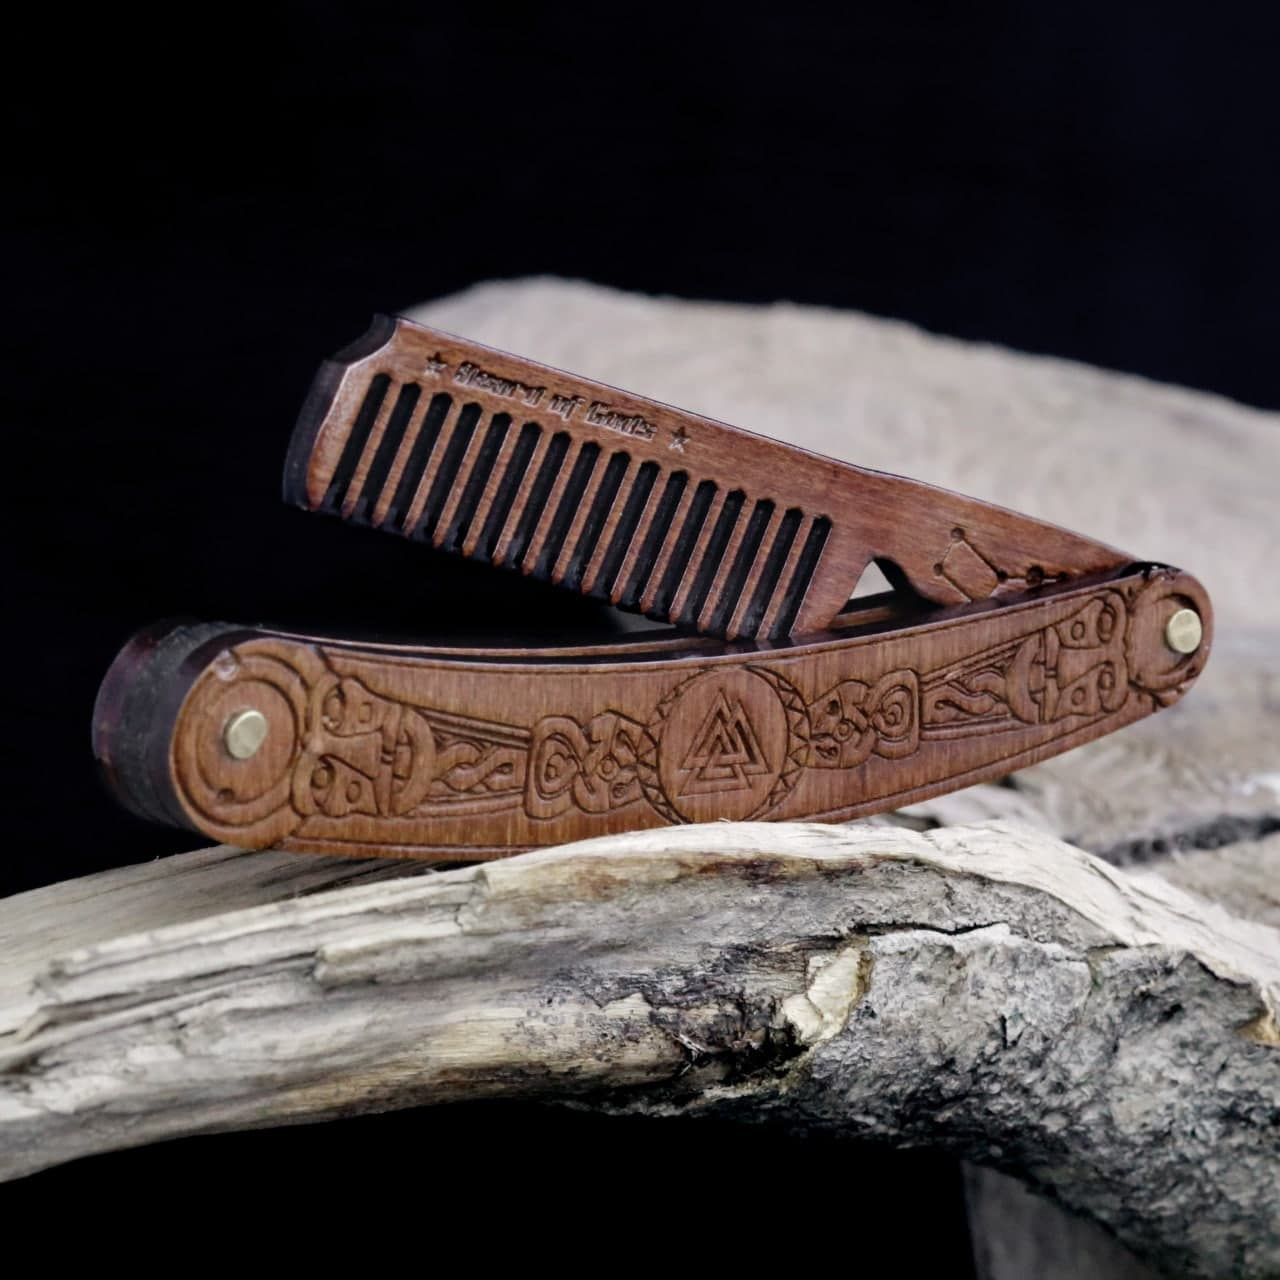 Combs & Brushes Viking Valknut Wooden Beard Pocket Comb Ancient Treasures Ancientreasures Viking Odin Thor Mjolnir Celtic Ancient Egypt Norse Norse Mythology